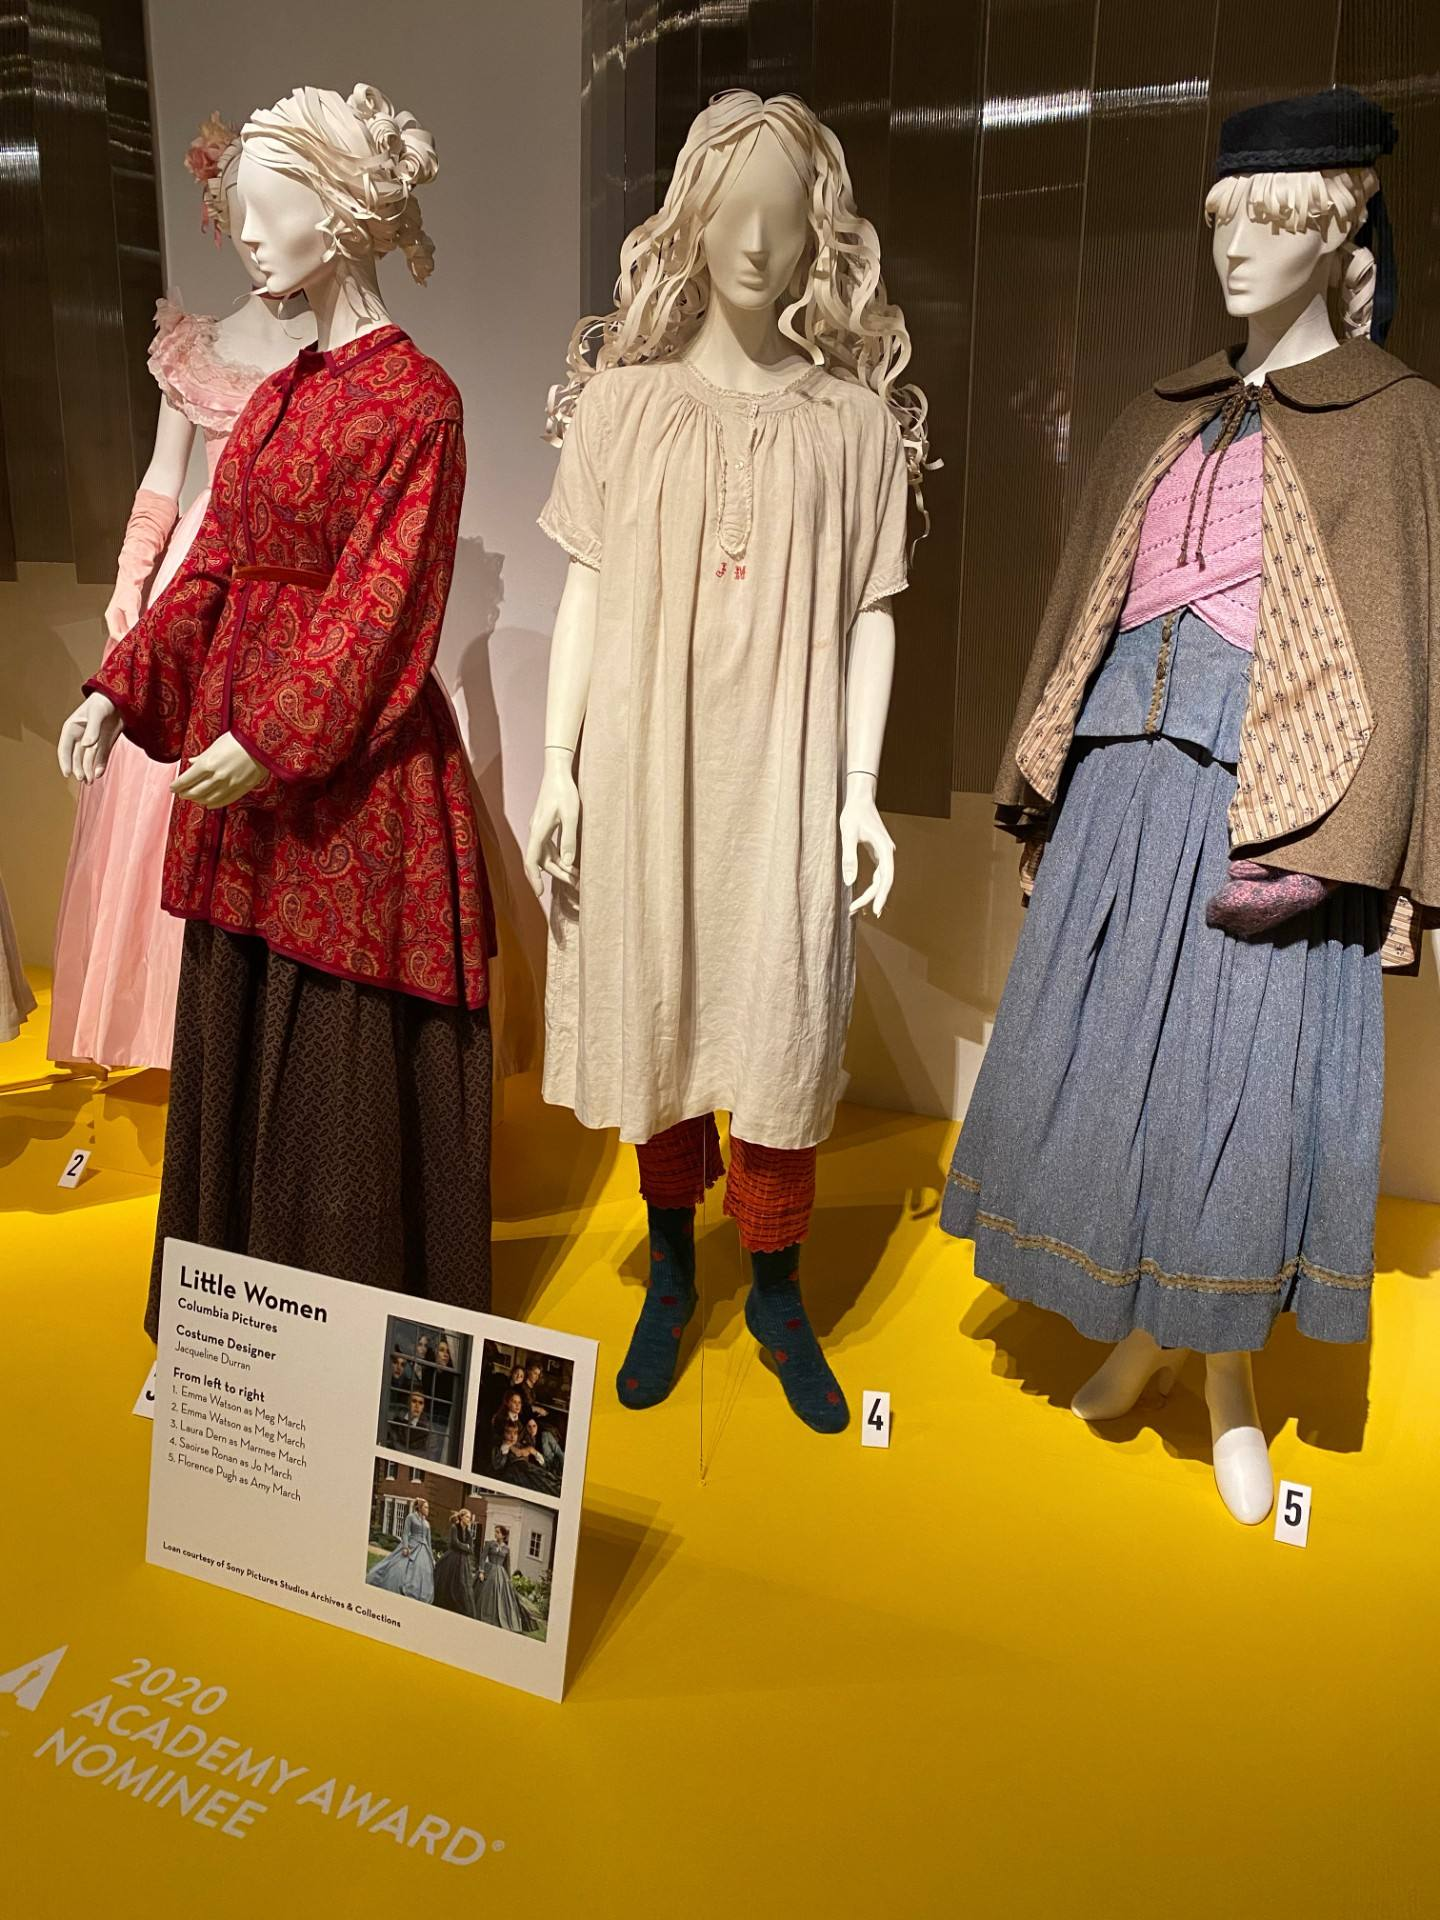 """Little Women"" costumes by Academy Award winner Jacqueline Durran, on view at FIDM"